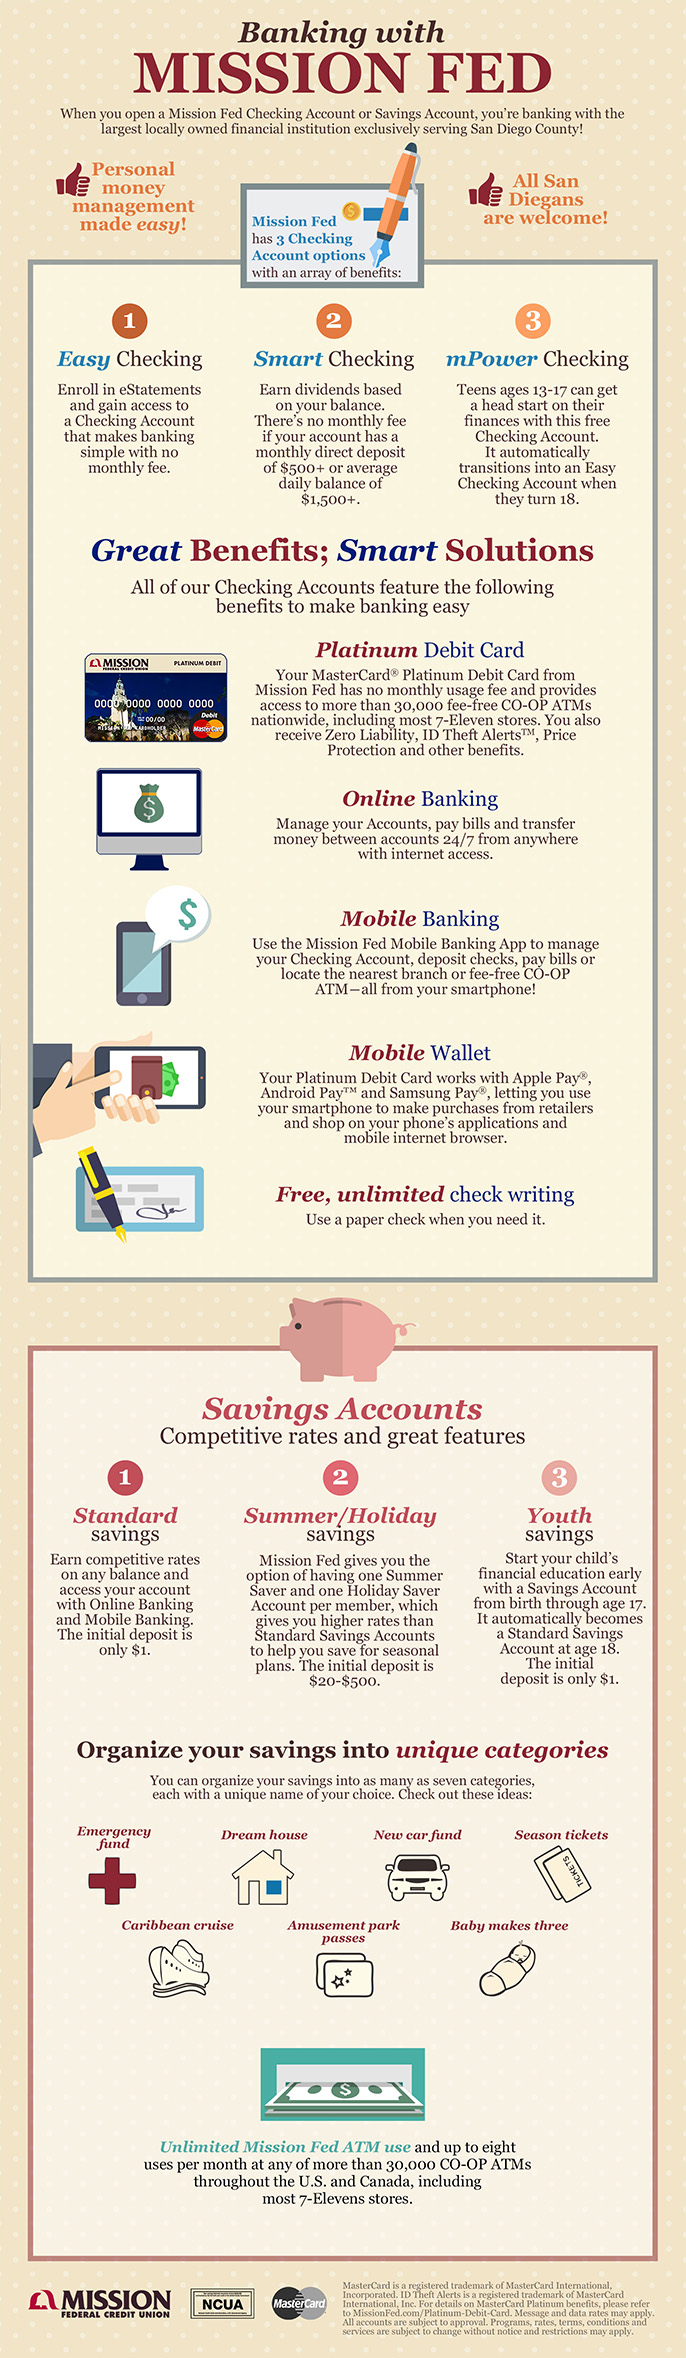 Banking with Mission Fed infographic